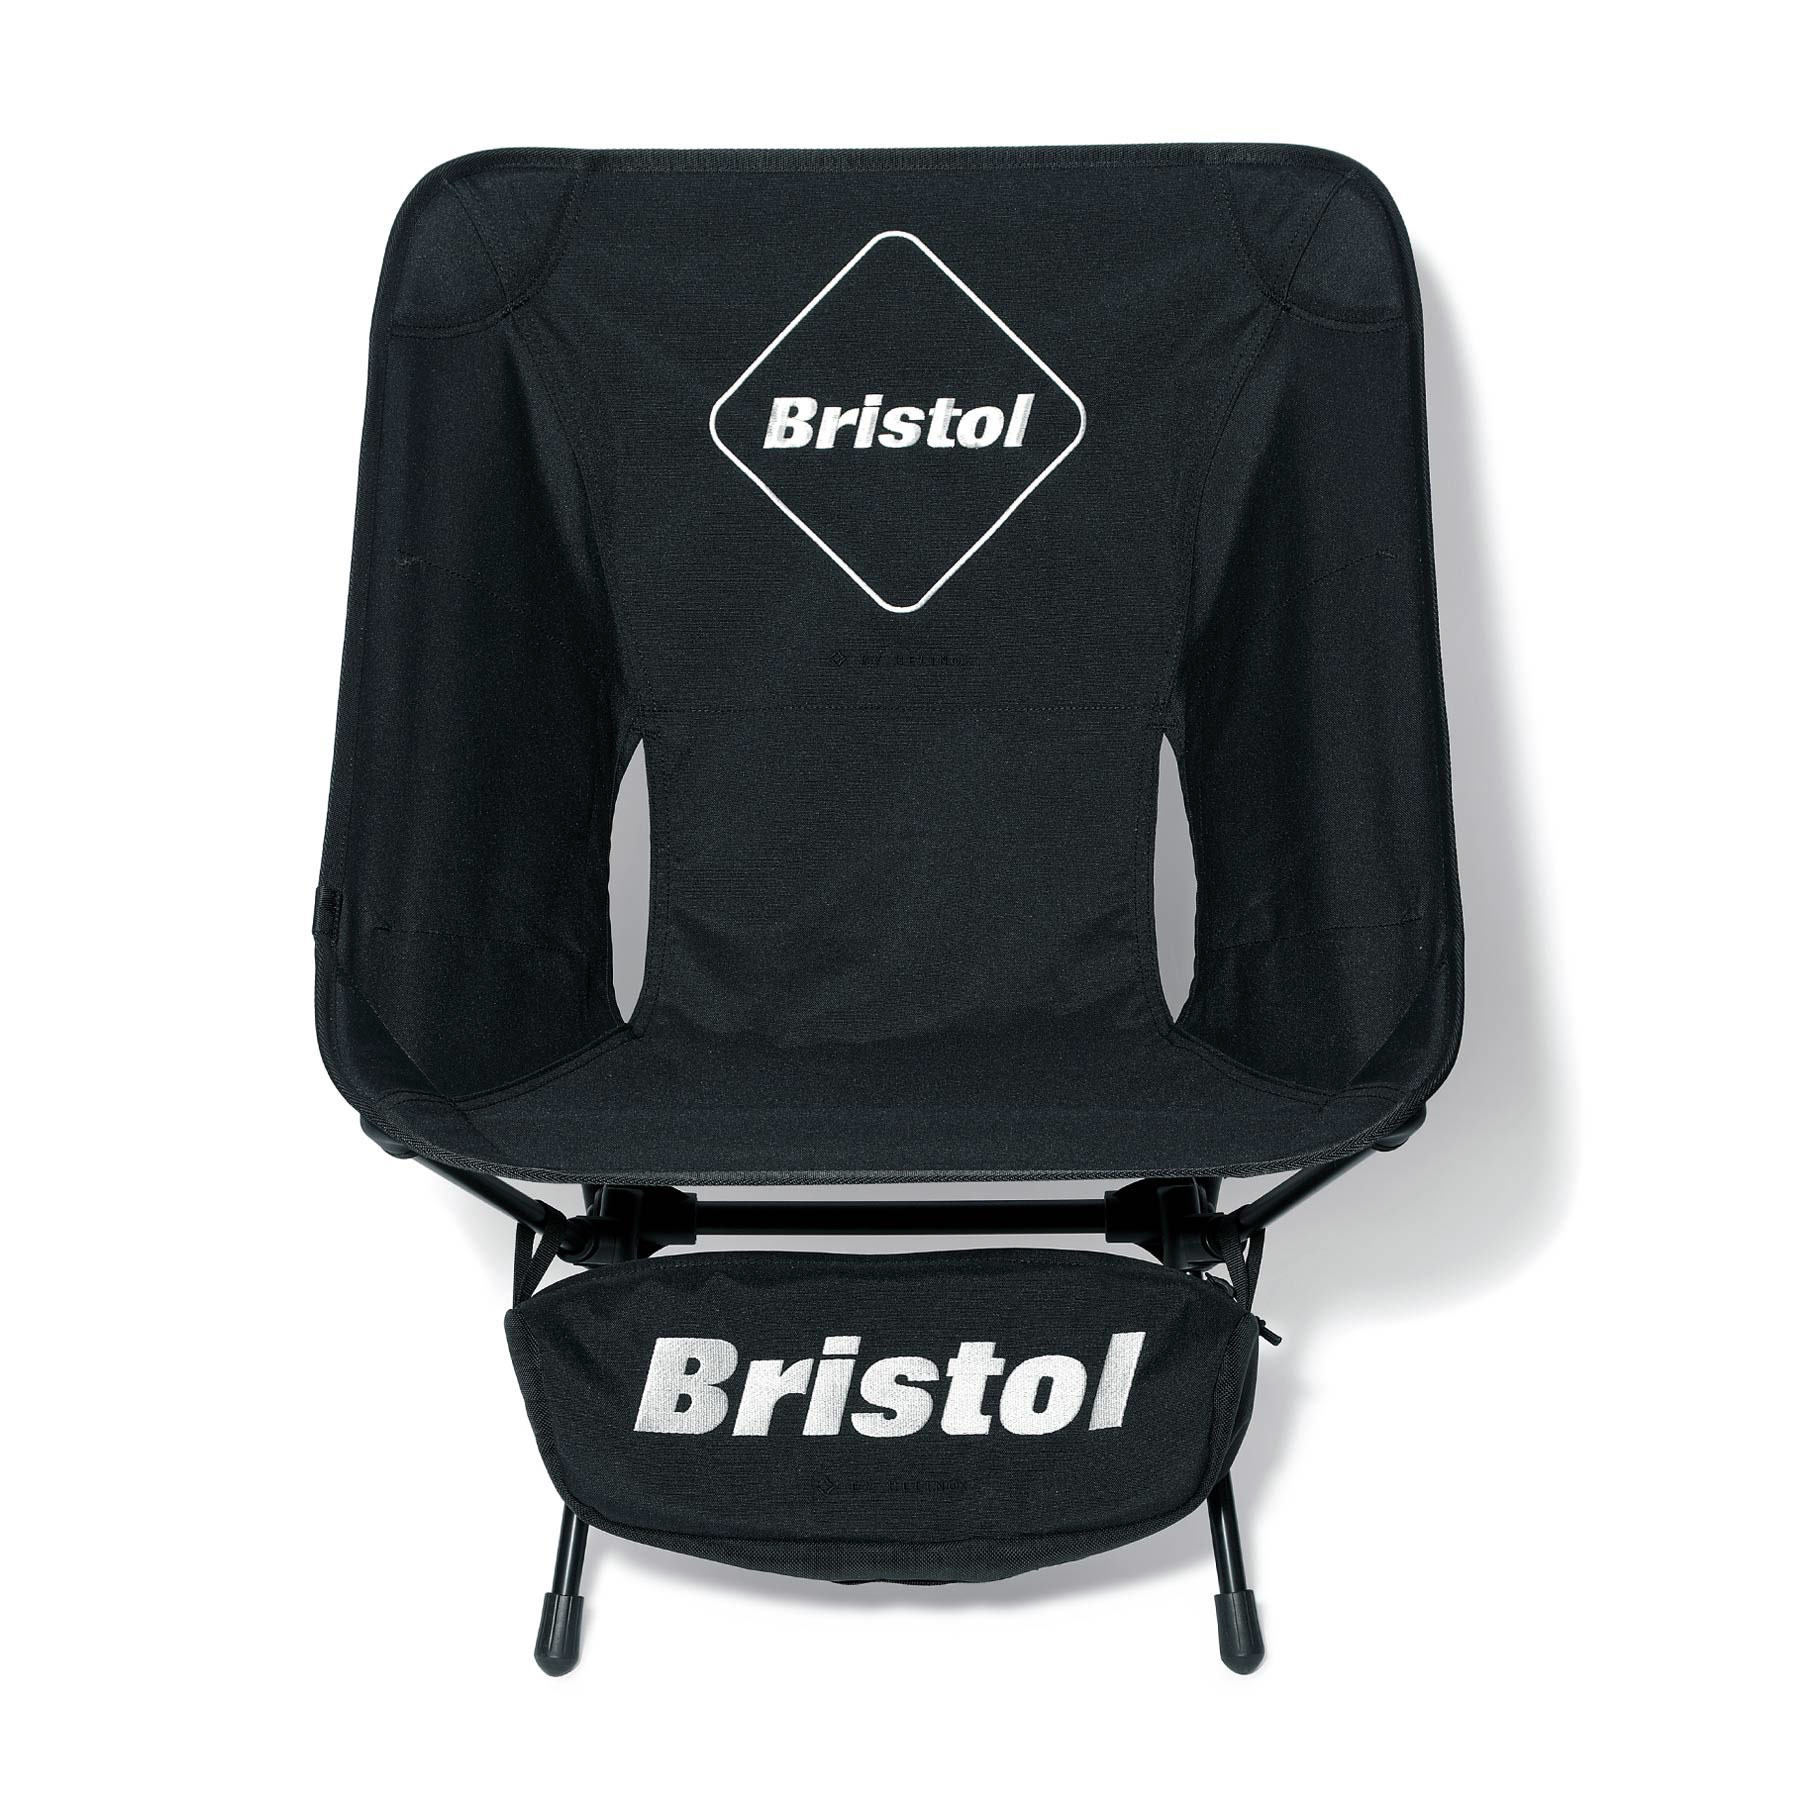 F.C.Real Bristol / HELINOX EMBLEM FOLDING CHAIR